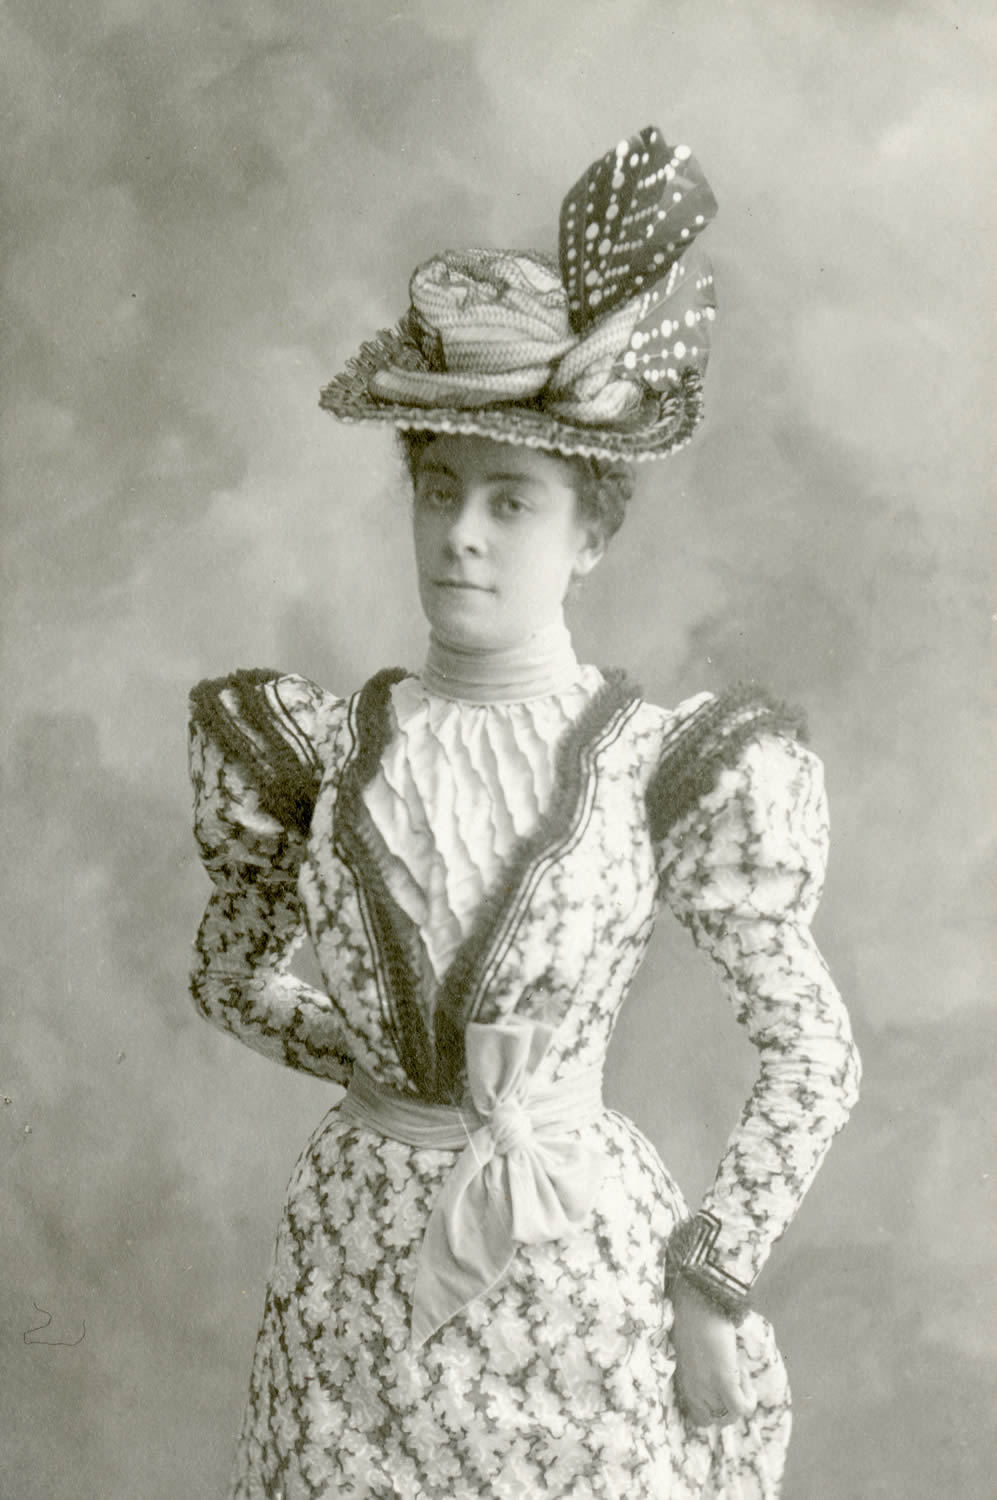 Portrait photo of Mary Eudora Garoutte, the first head librarian for the California Section, c. 1890s